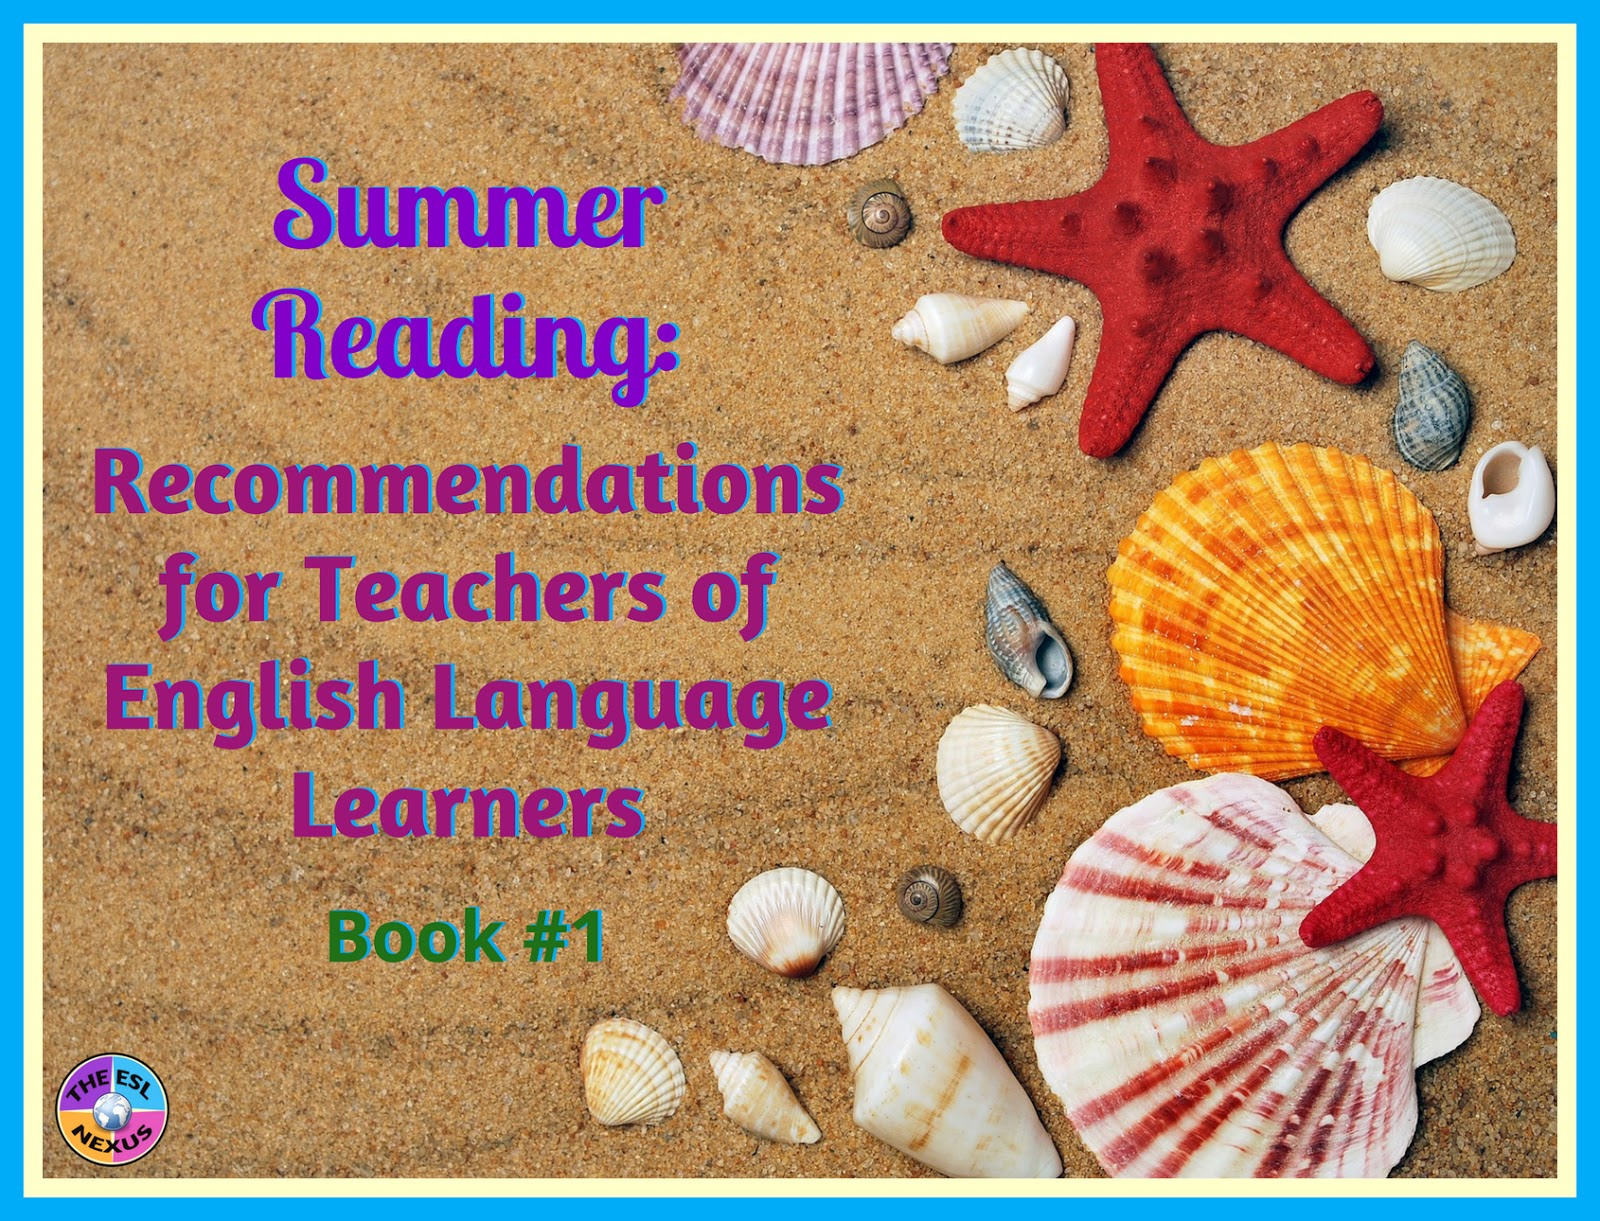 Summer reading: Book recommendations for teachers of English Language Learners, Book #1 | The ESL Nexus